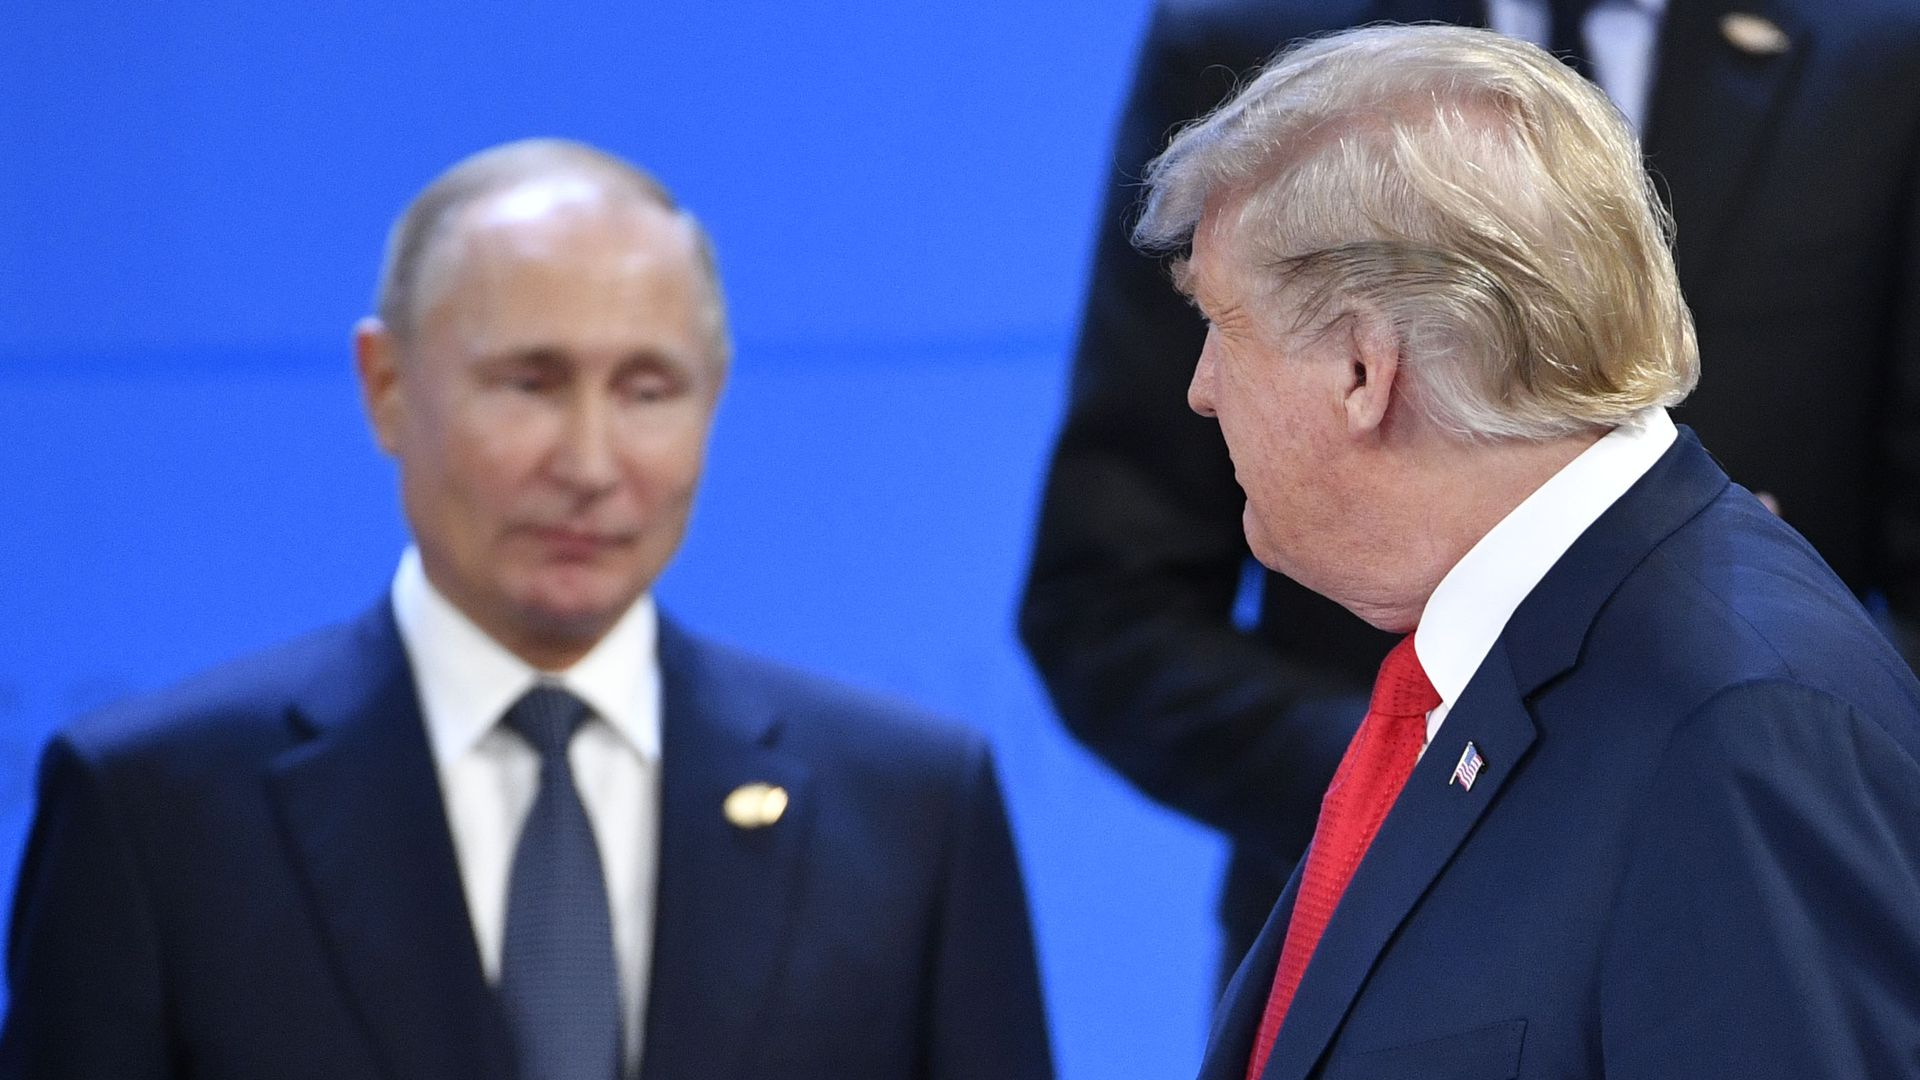 In this image, Trump walks by Putin and smiles at him.